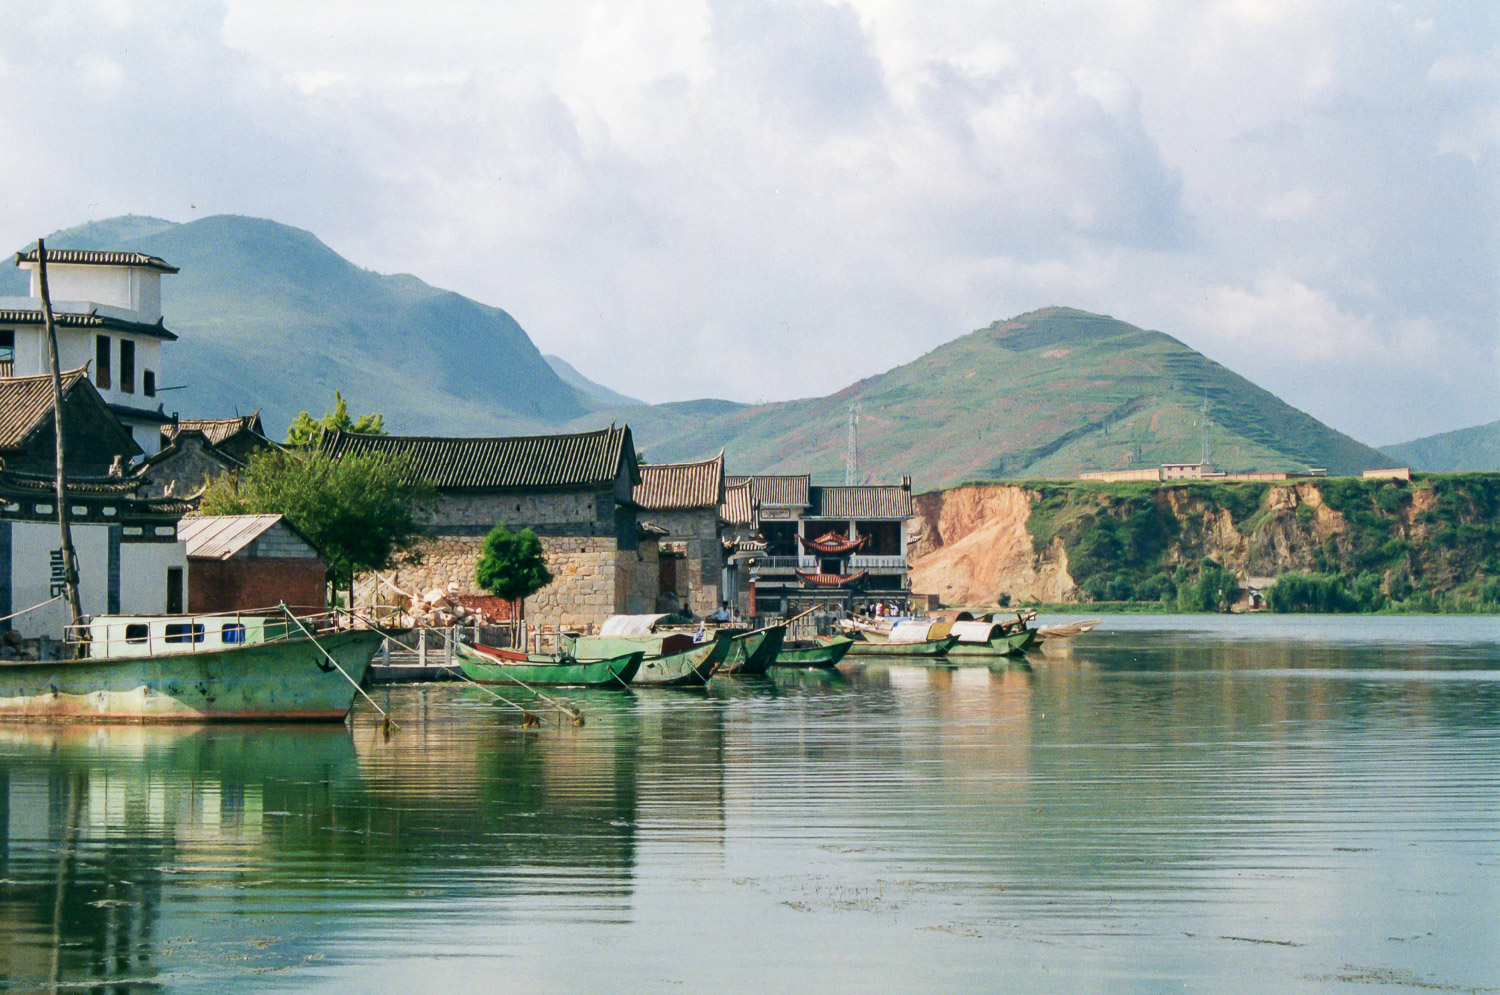 Lake Erhai in Dali, Yunnan Province, China